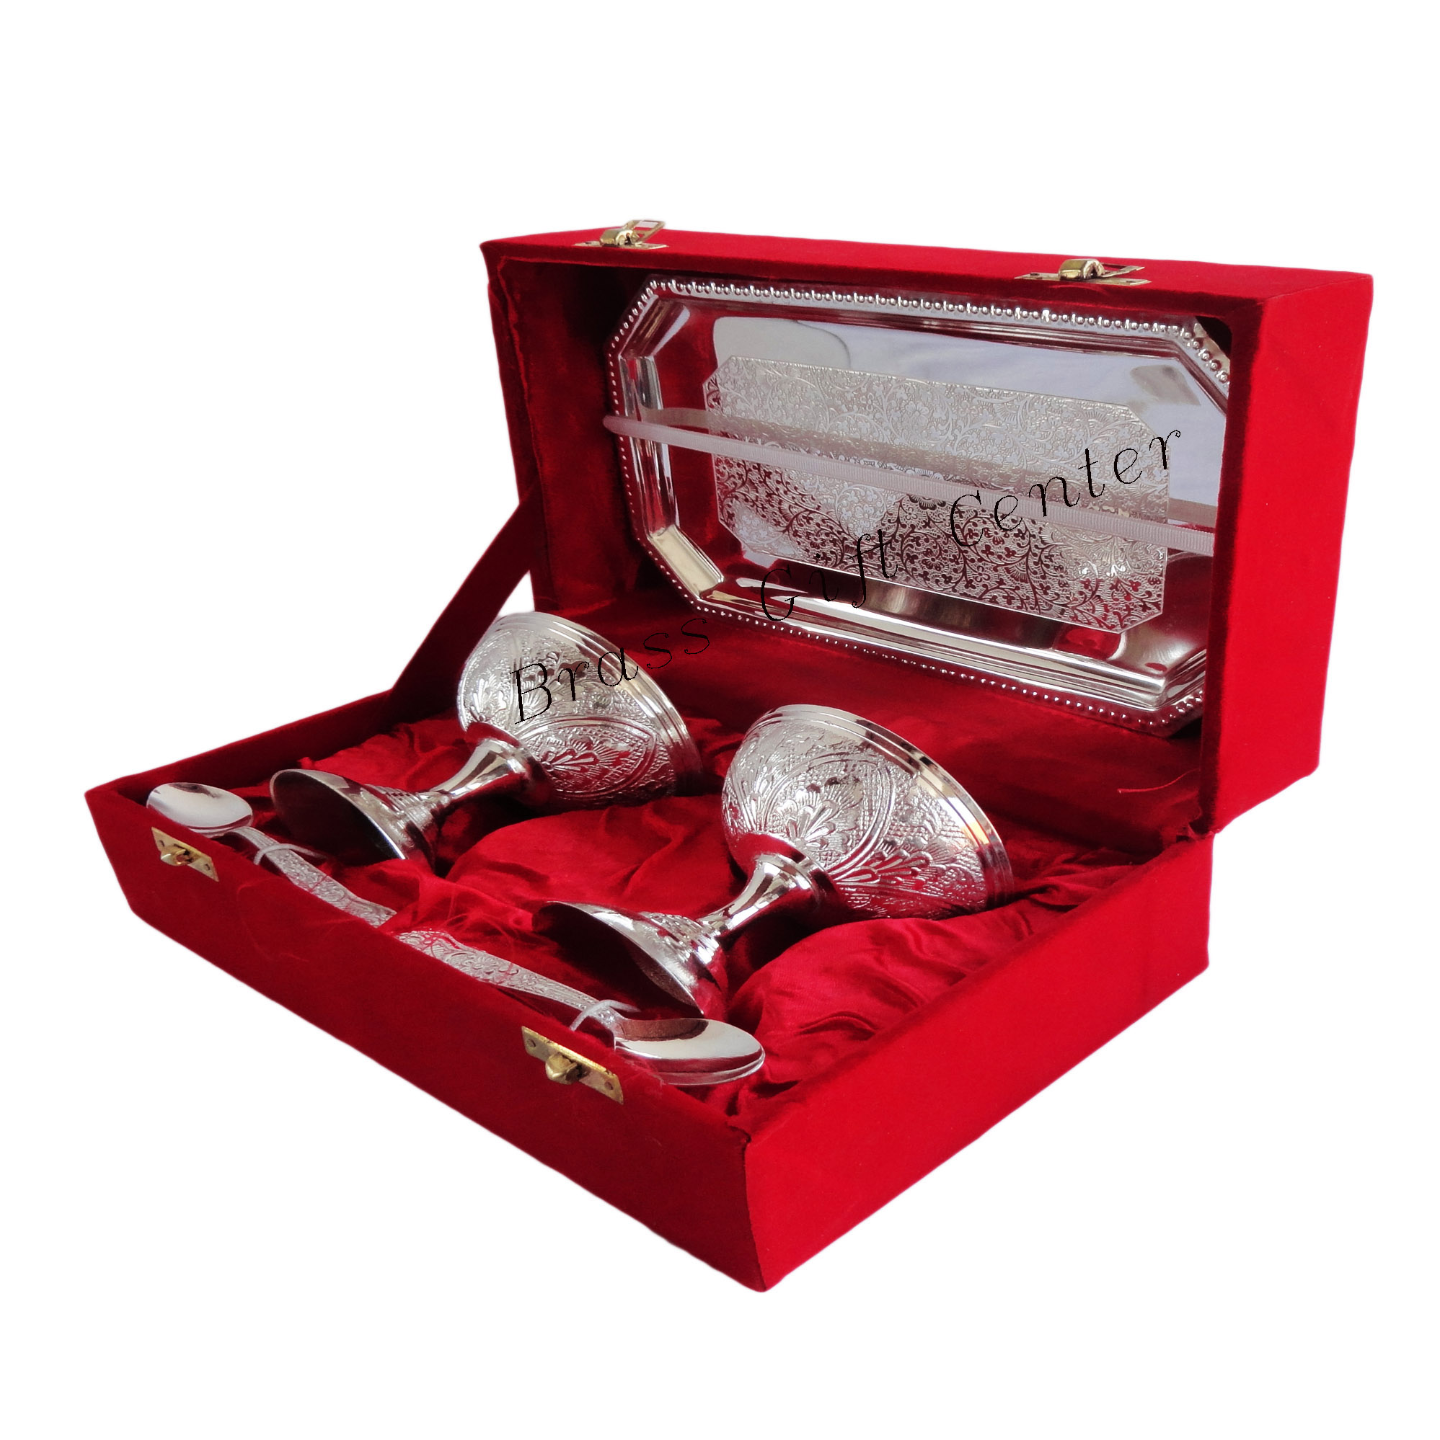 Brass Ice Cream Bowl Set In Silver Pating Packed In Red Velvet Box - 3.53.53.5 Inch  B091